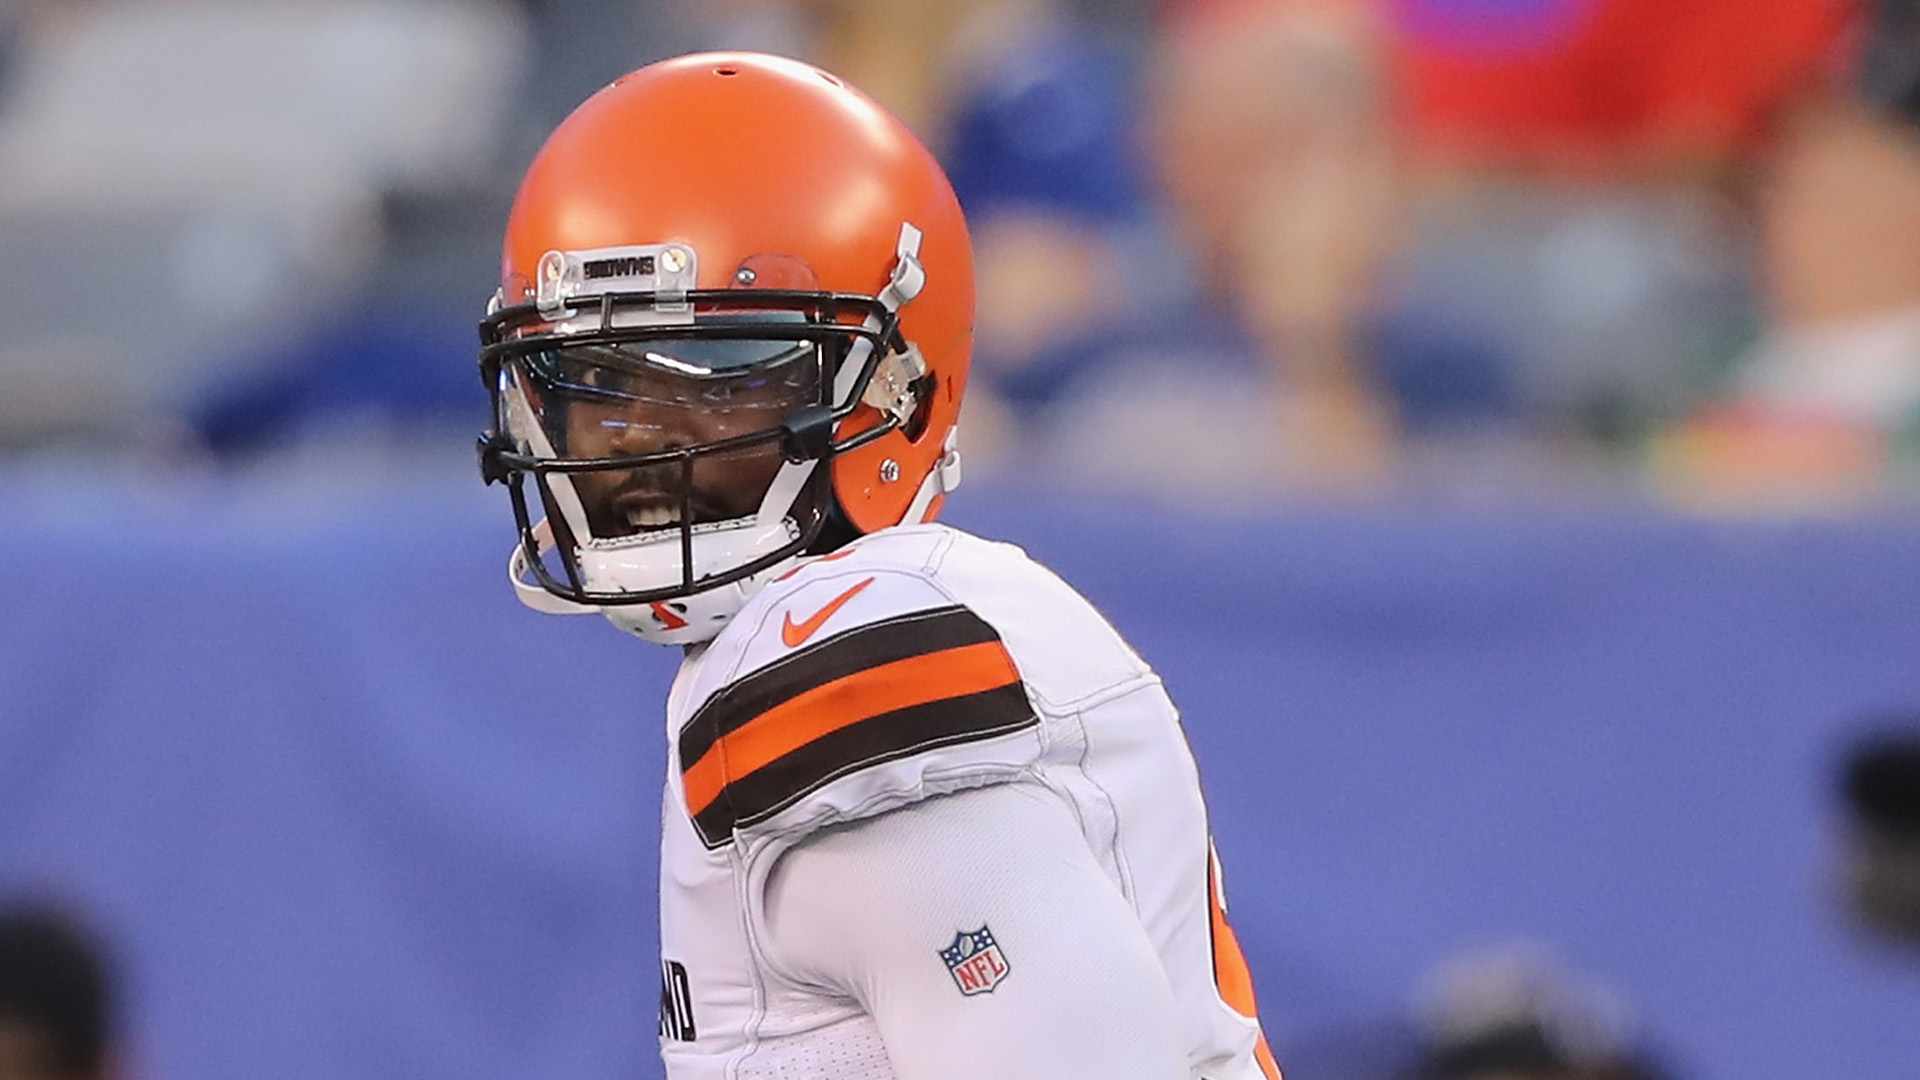 Browns QB Tyrod Taylor 'fine' after hand injury, won't miss time